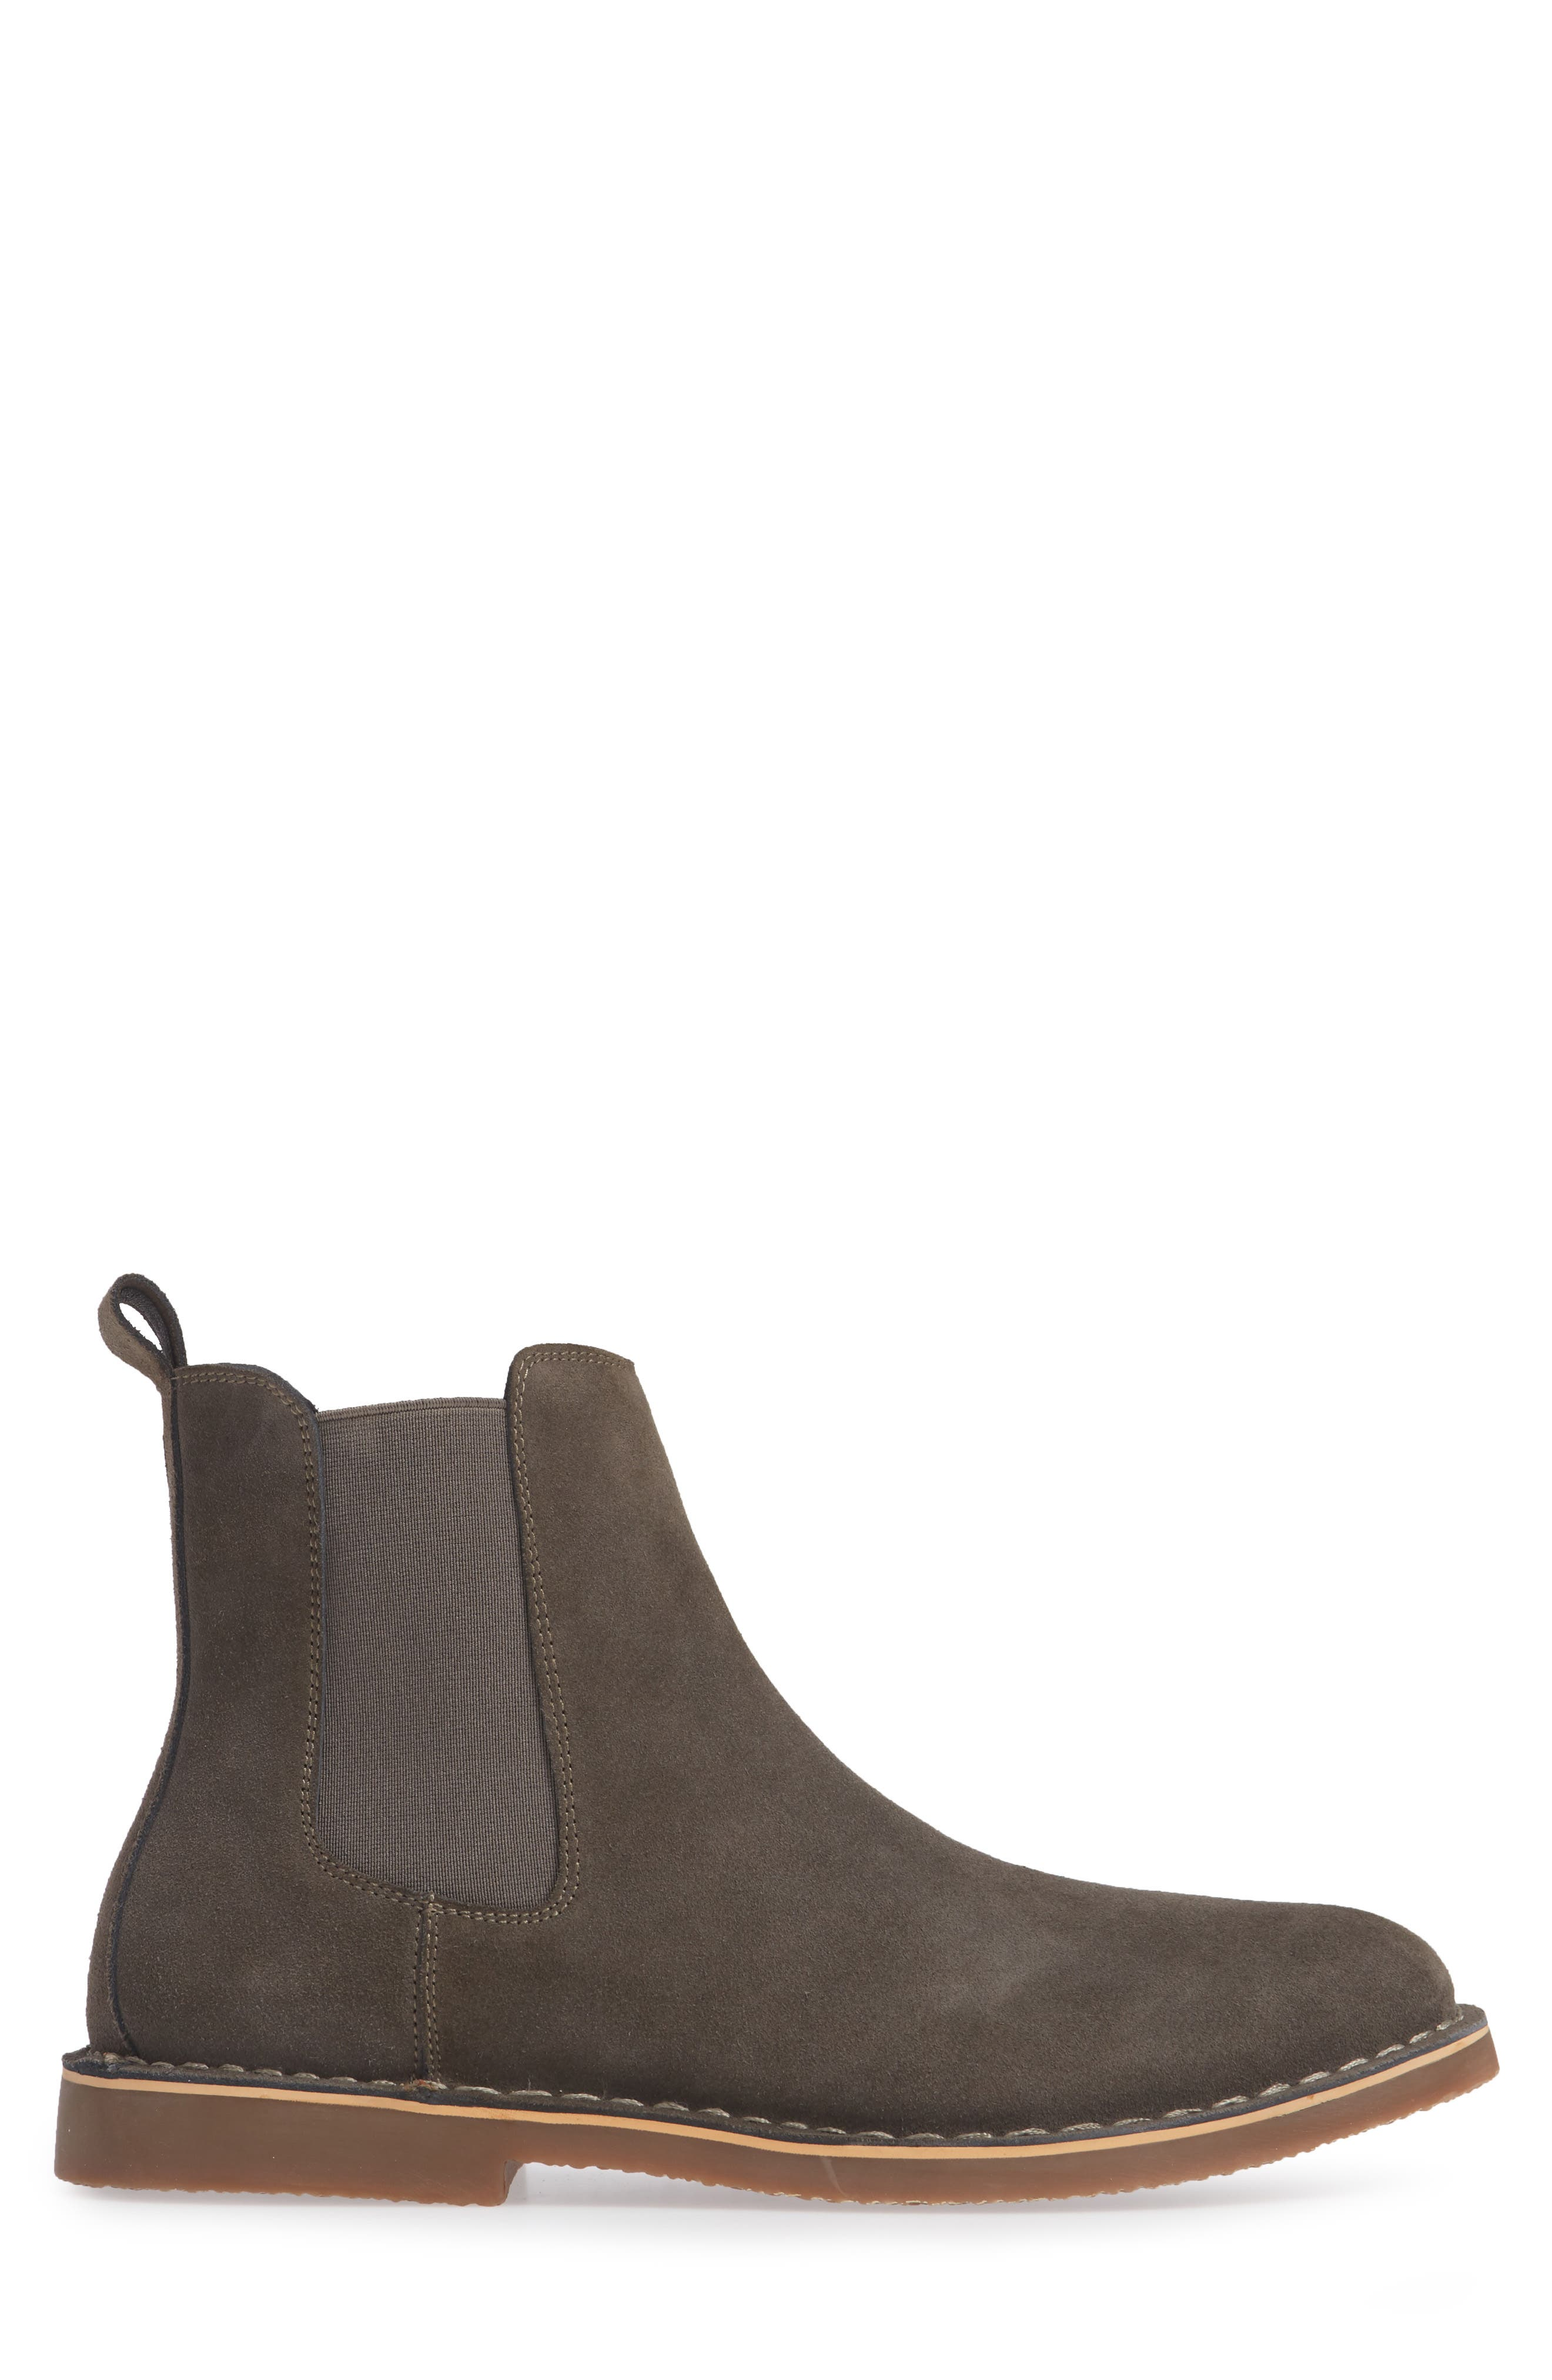 Mesa Chelsea Boot,                             Alternate thumbnail 6, color,                             Charcoal Suede